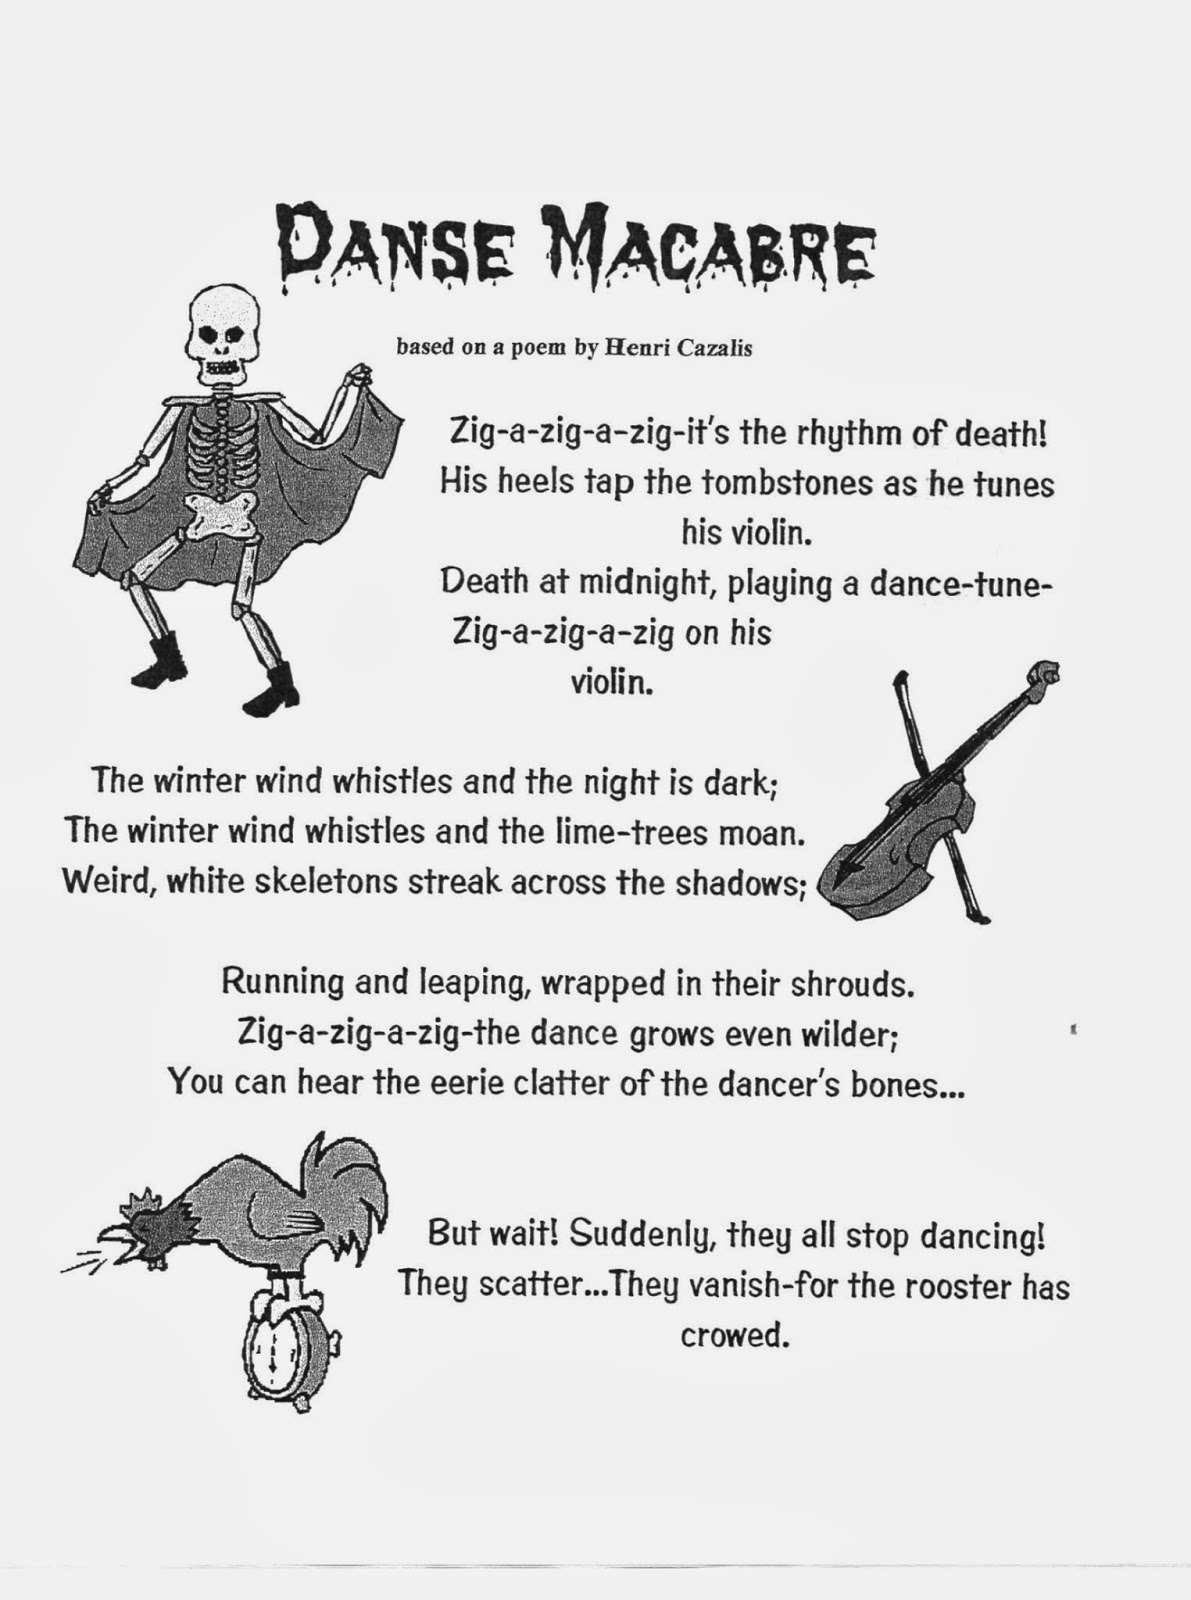 nhcs music education danse macabre mood i this poem in parts and have students it back to me students are asked to give me words to describe the mood we then watch and listen to danse